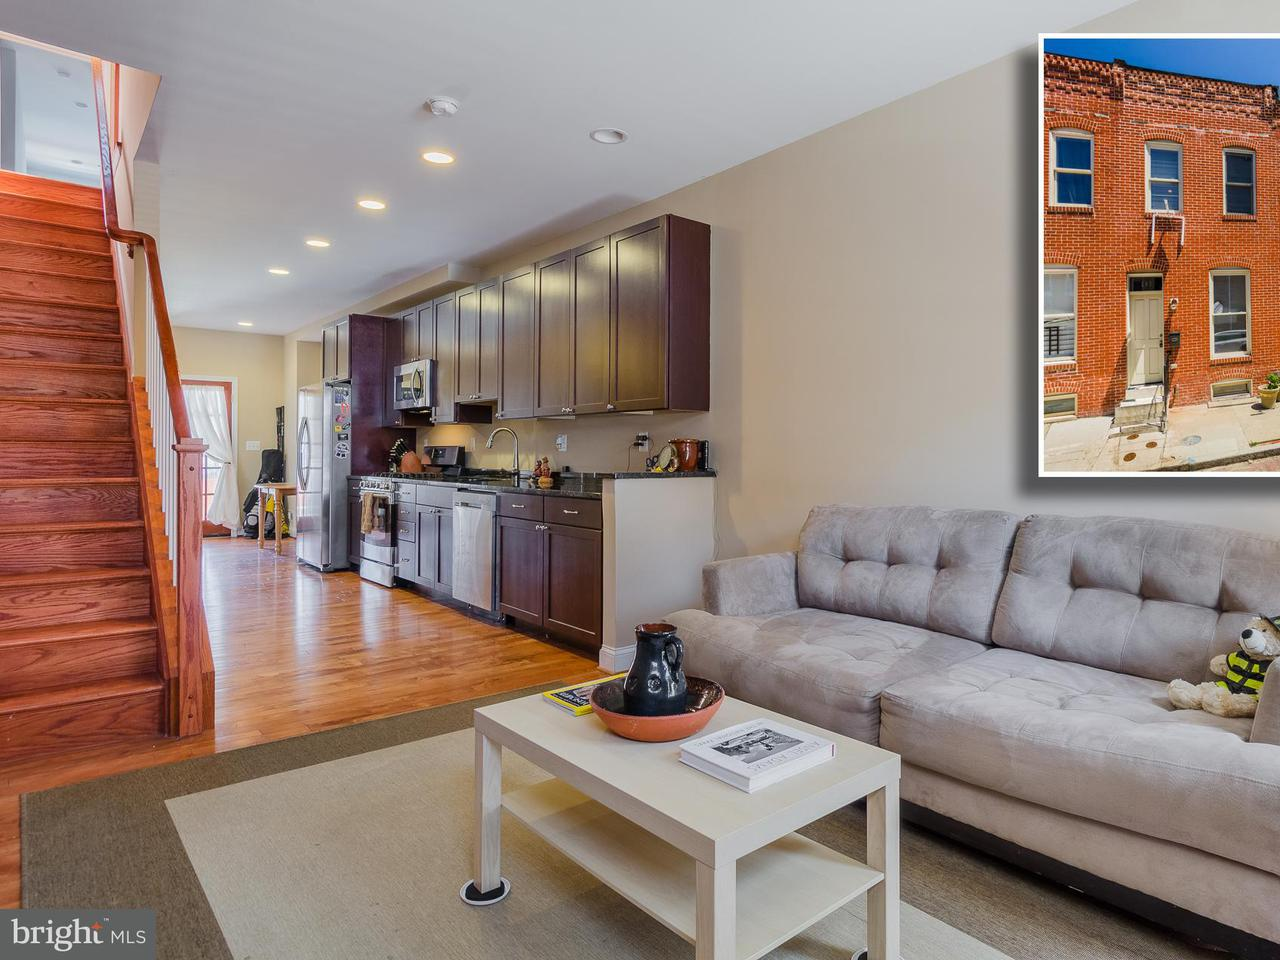 Single Family for Sale at 207 Belnord Ave N Baltimore, Maryland 21224 United States